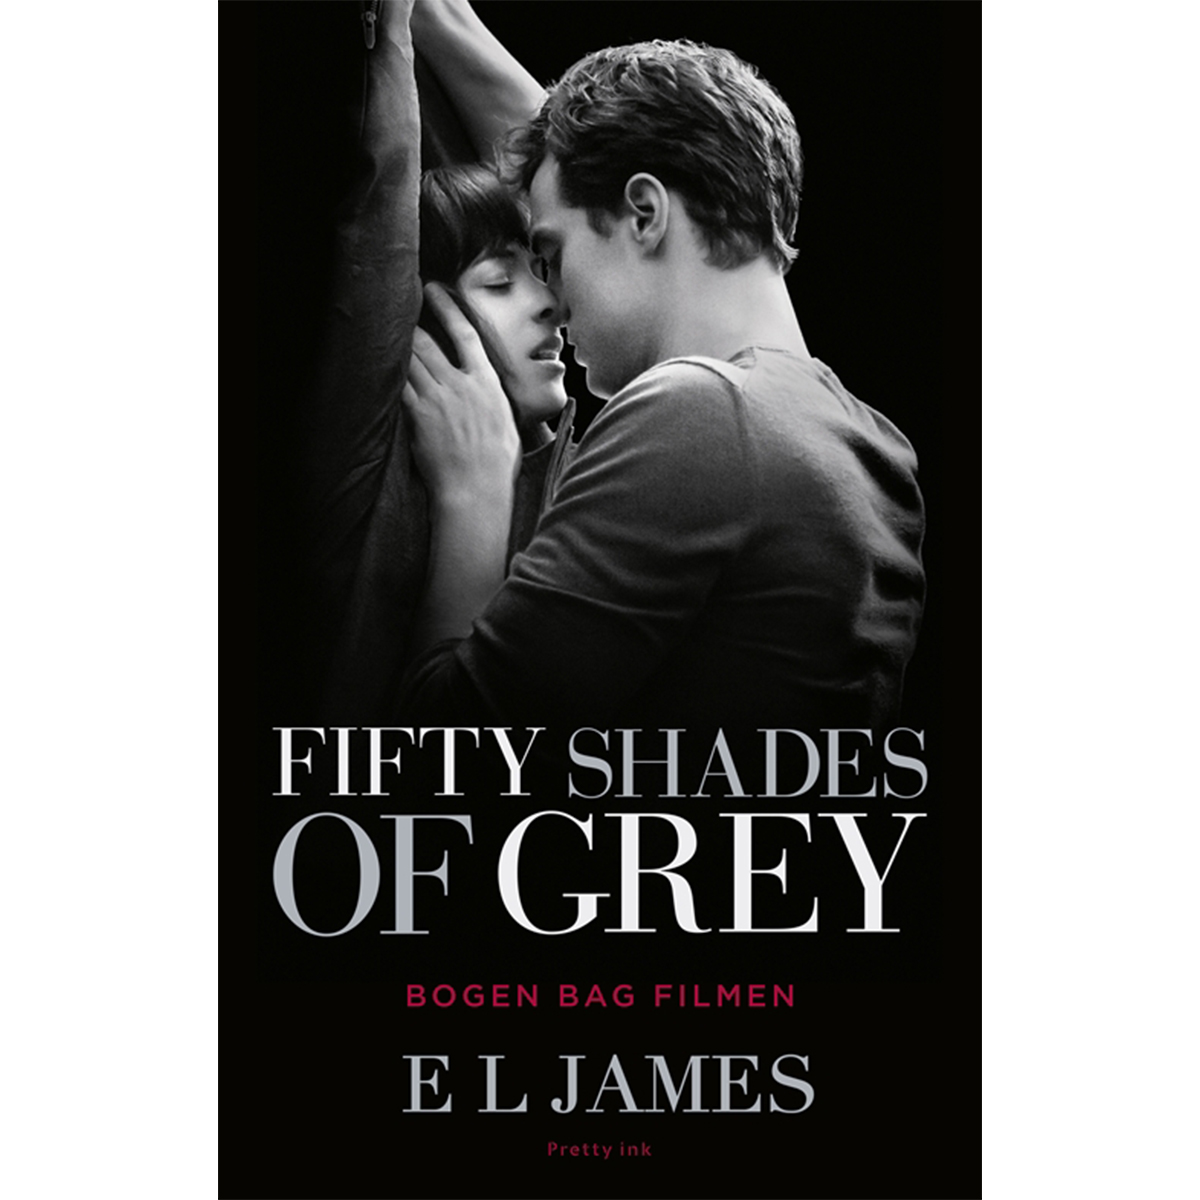 Image of   Fifty shades 1 - Fifty shades of Grey - Filmudgave - Hardback